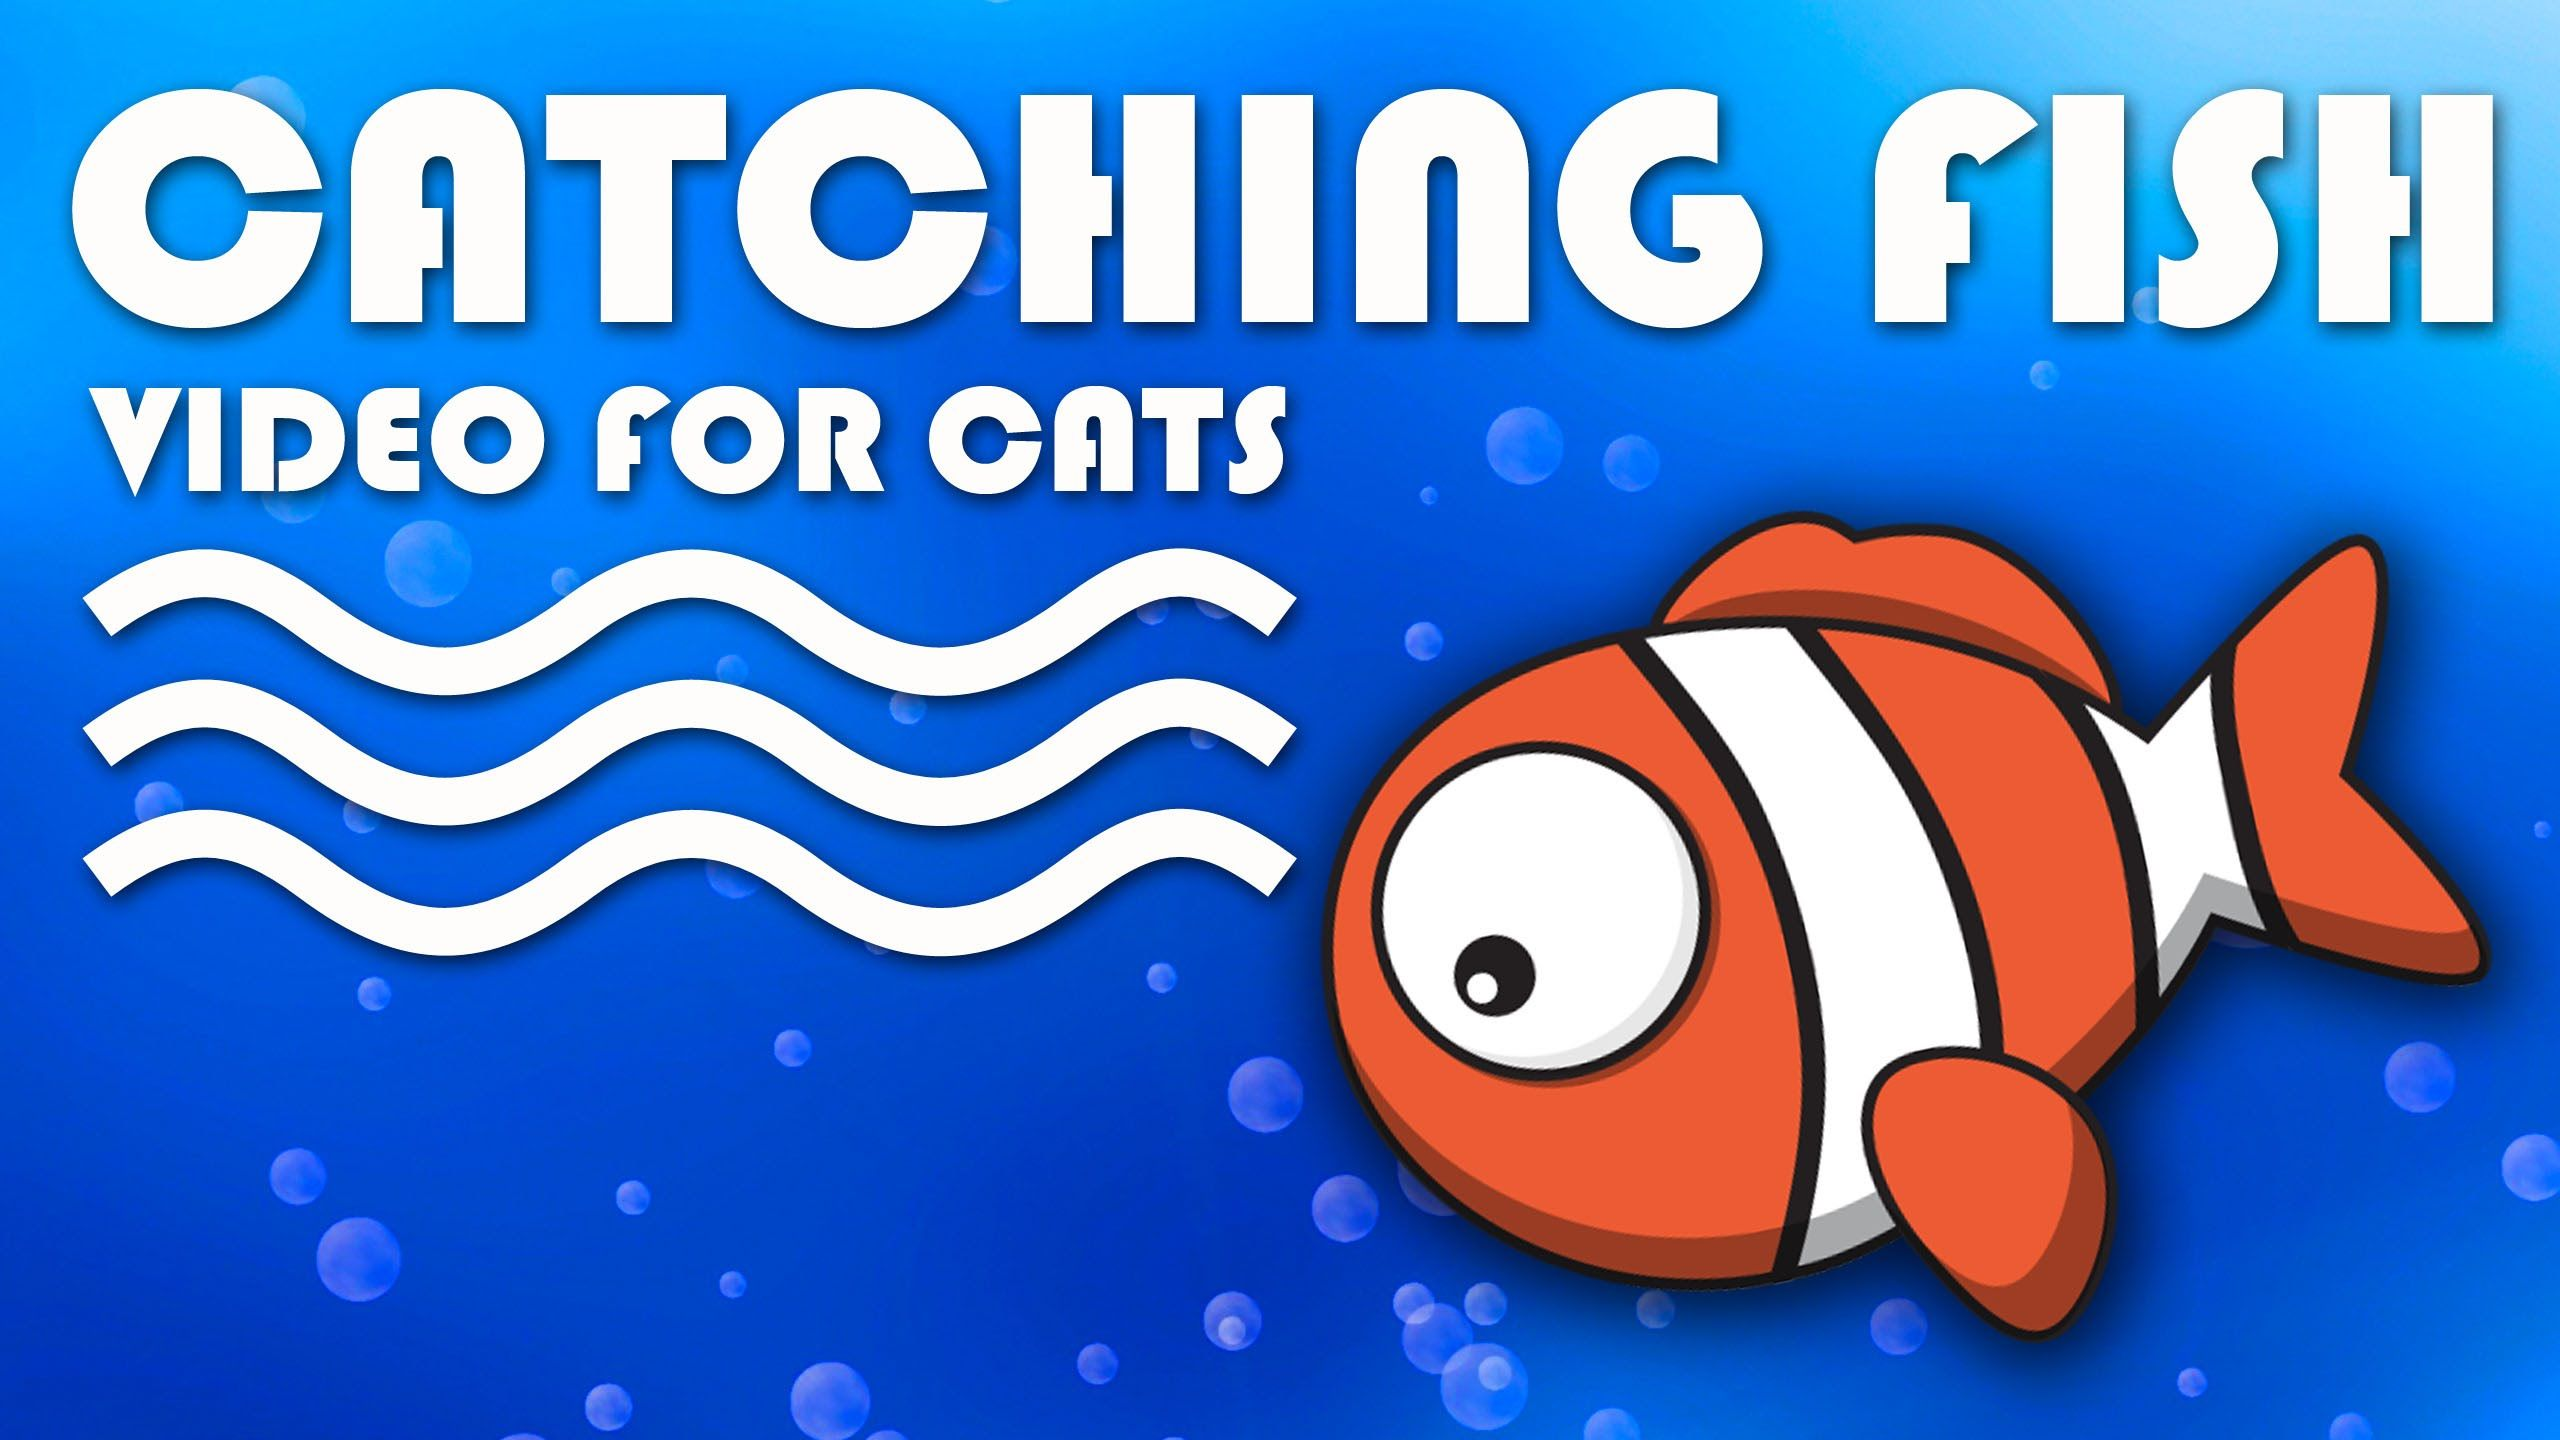 ENTERTAINMENT VIDEO FOR CATS. Catching a Cute Fish